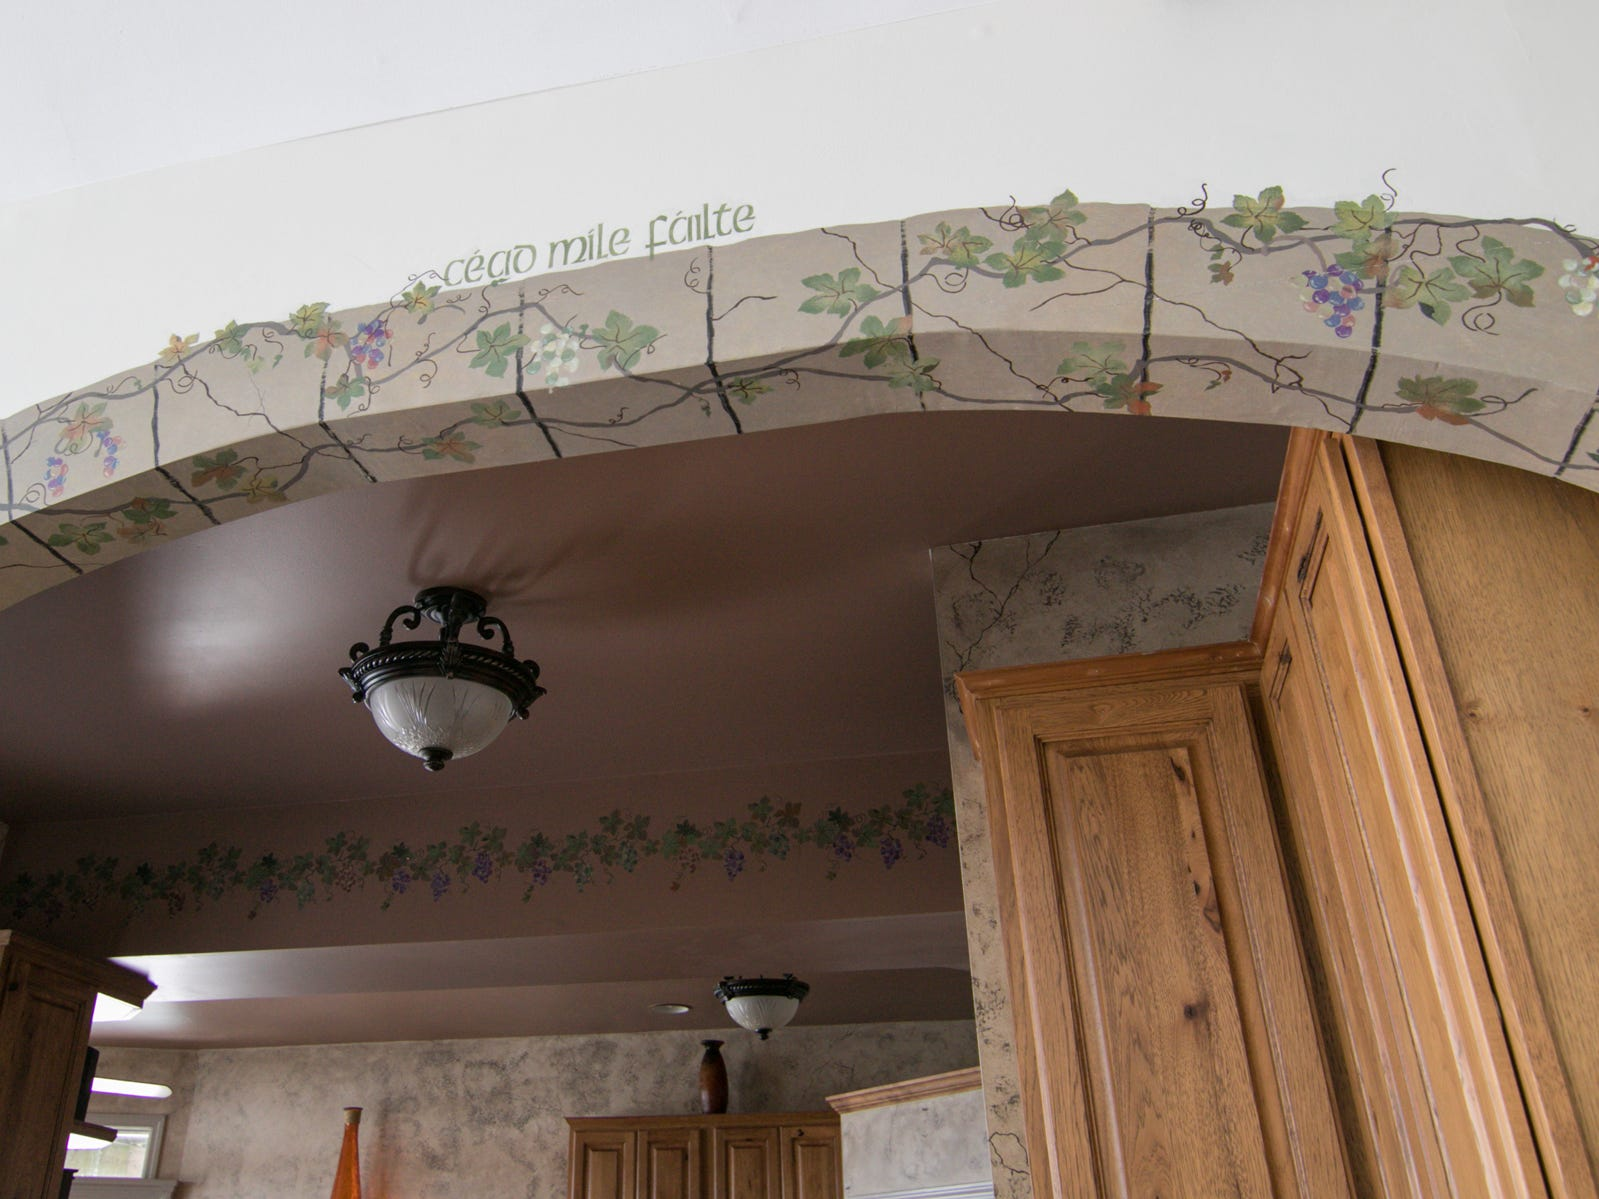 Hand-painted designs adorn the archway leading into the kitchen and dining room of the Olmsted home, shown Thursday, March 7, 2019.